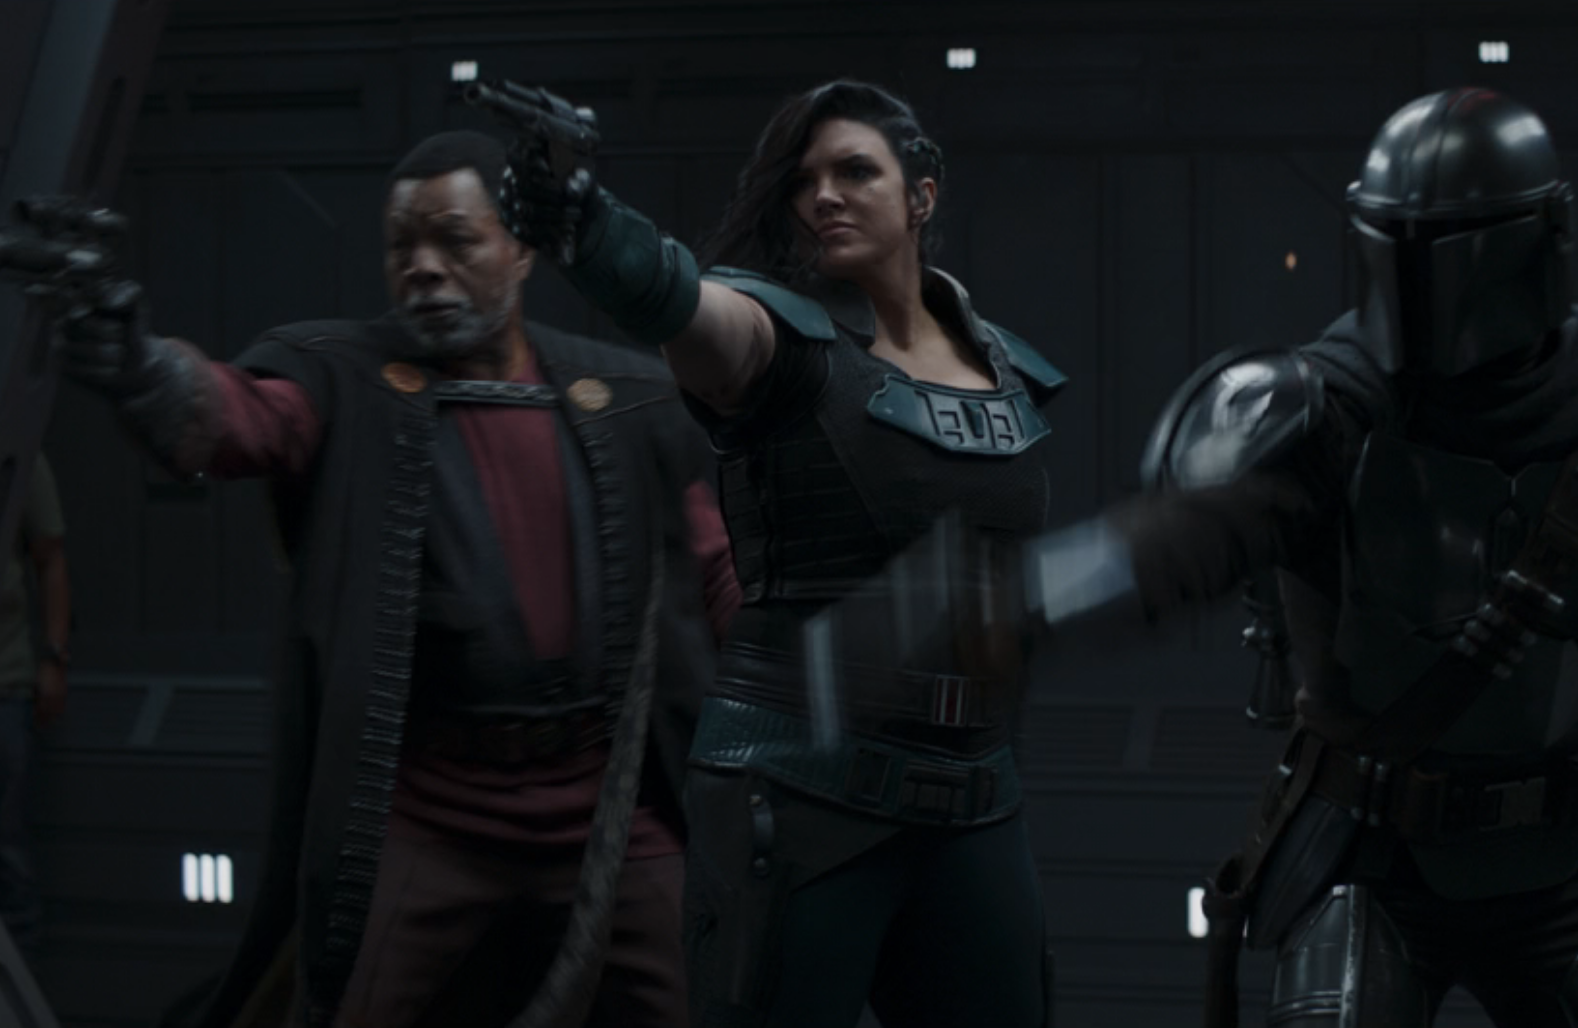 Greef, Cara, and the Mandalorian firing blasters in a corridor with a crew member in jeans and a T-shirt barely visible on the left side of the screen